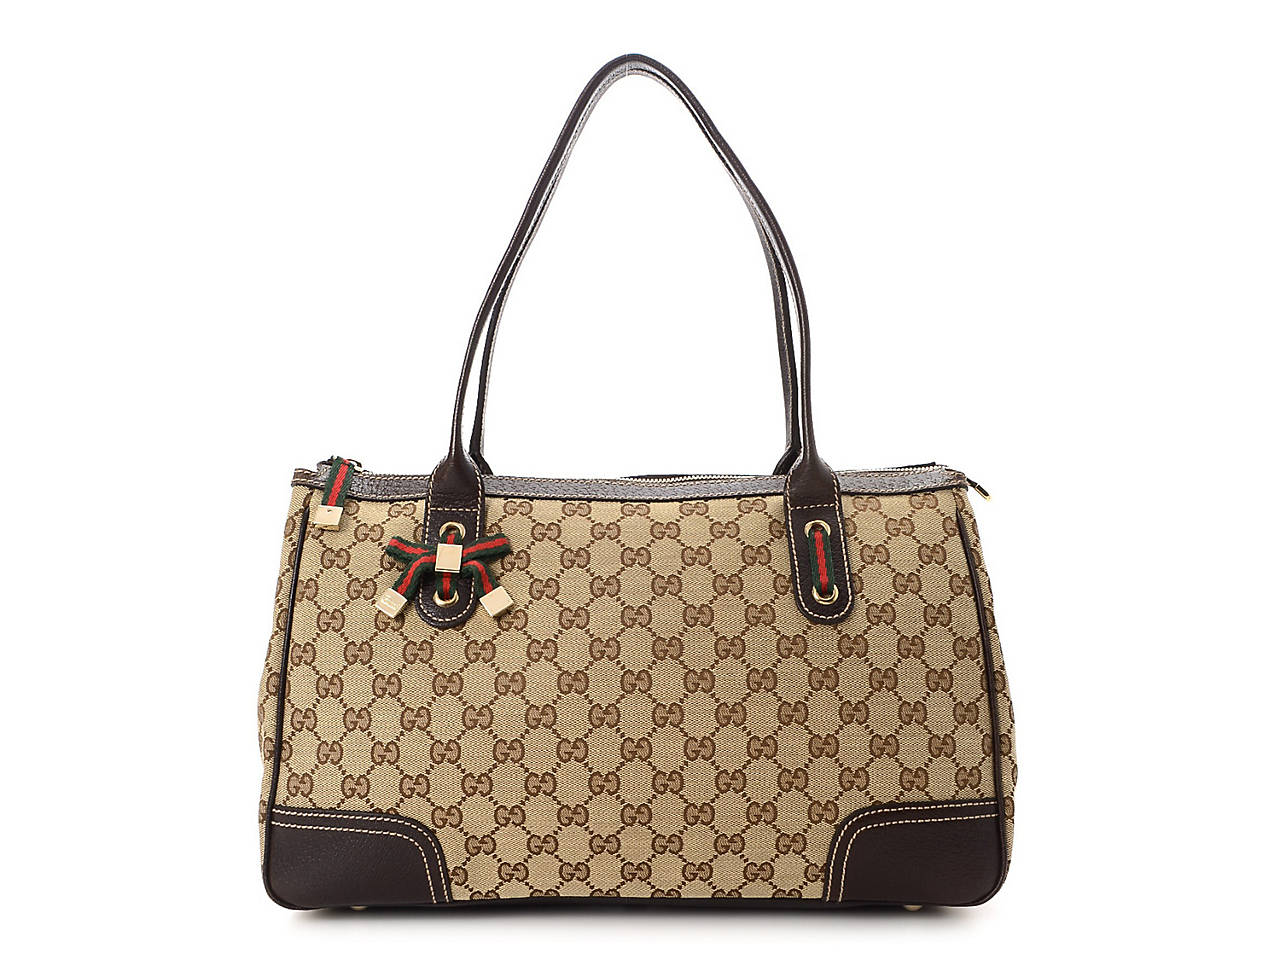 6dc9393eac9 Gucci - Vintage Luxury GG Canvas Princy Tote Women s Handbags ...